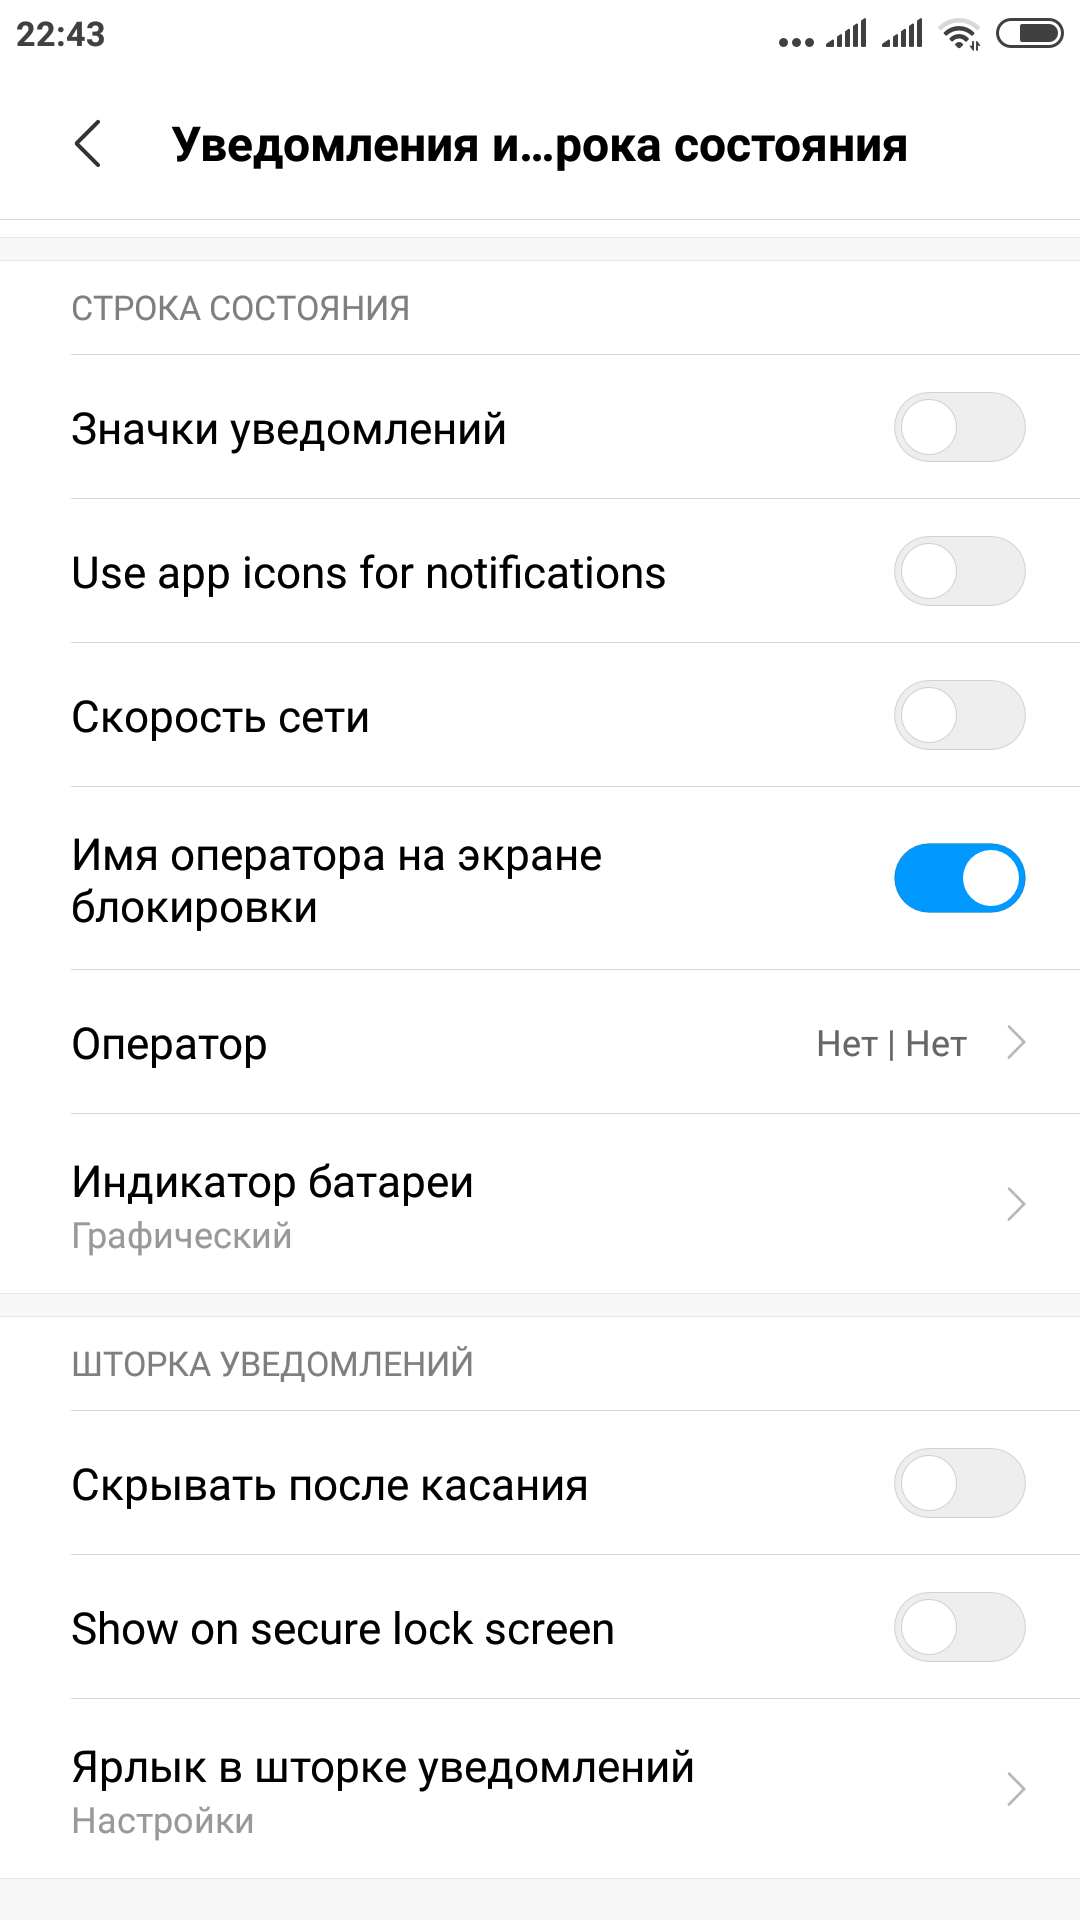 Screenshot_2018-12-18-22-43-07-071_com.android.settings.png